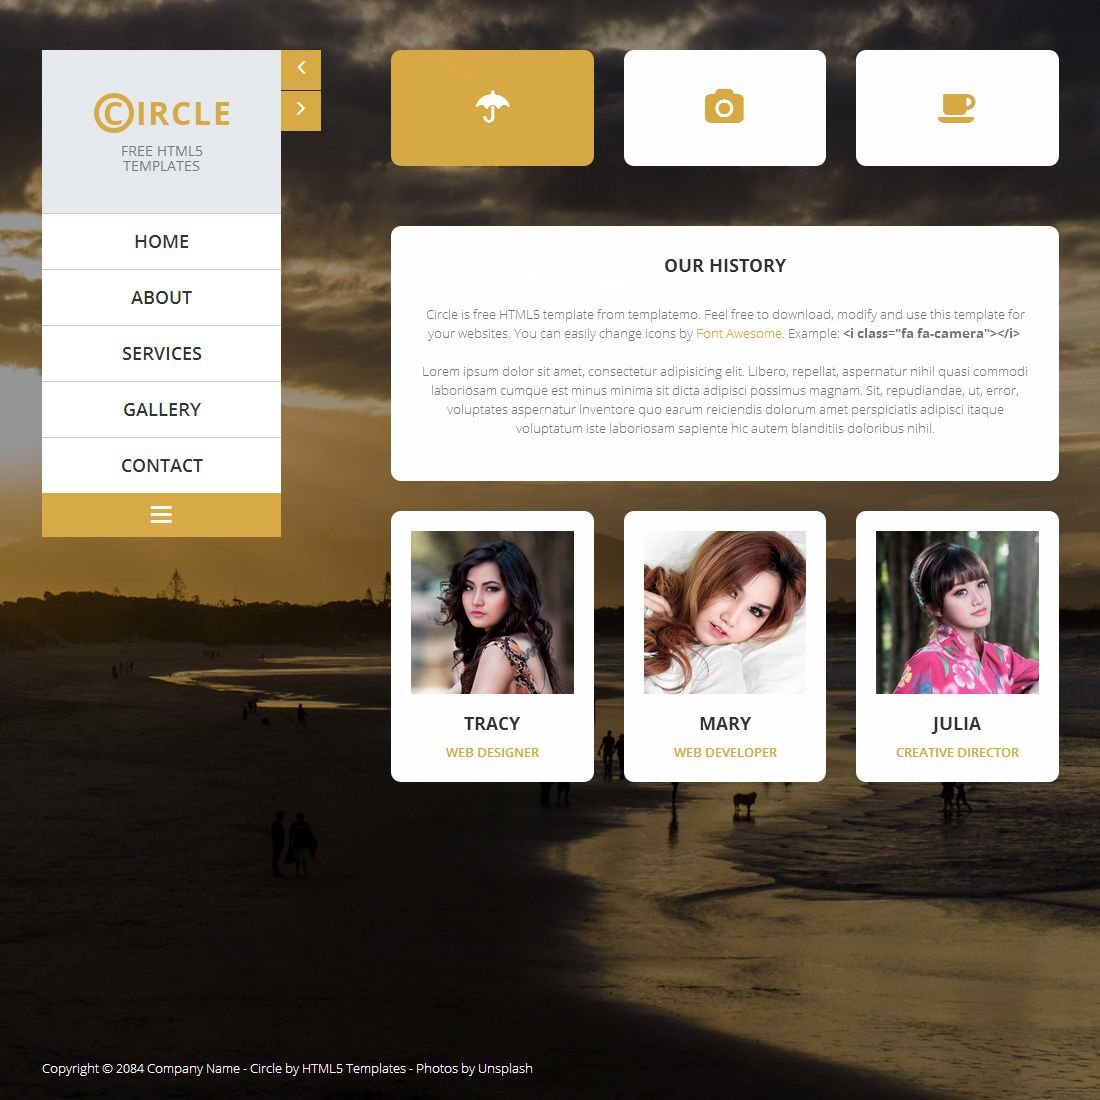 009 Incredible Free Website Template Download Html And Cs For Photo Gallery Inspiration Full